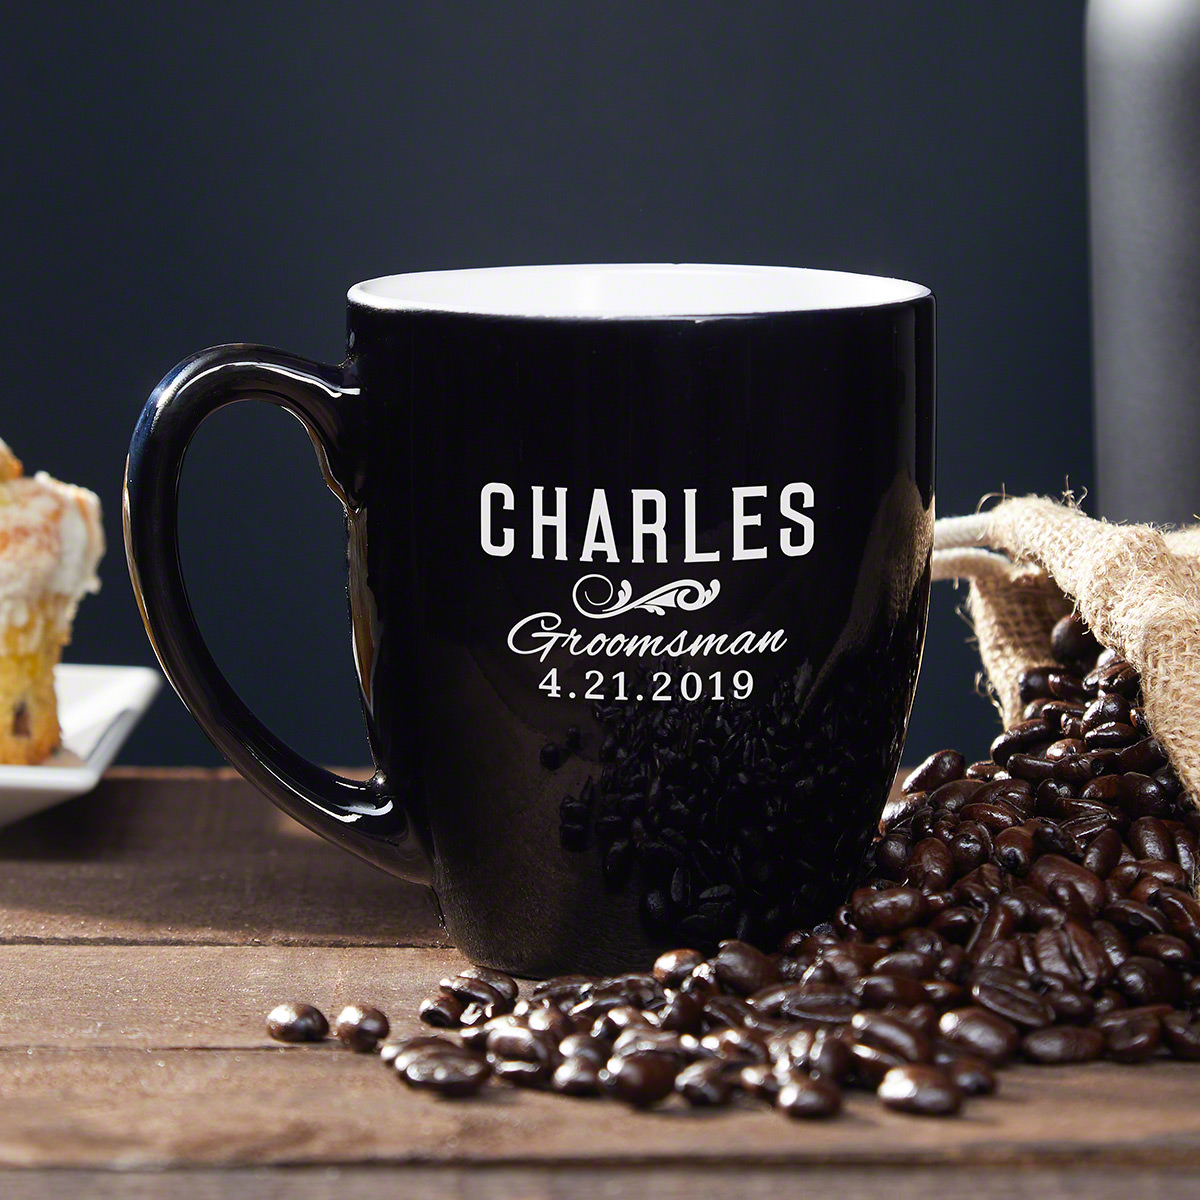 You want to give your groomsmen a nice gift as a thank you for being part of your wedding, but you want it to be something that they will actually enjoy and use. Why not a personalized coffee mug? This groomsman mug is engraved with a title, name, and the #mug